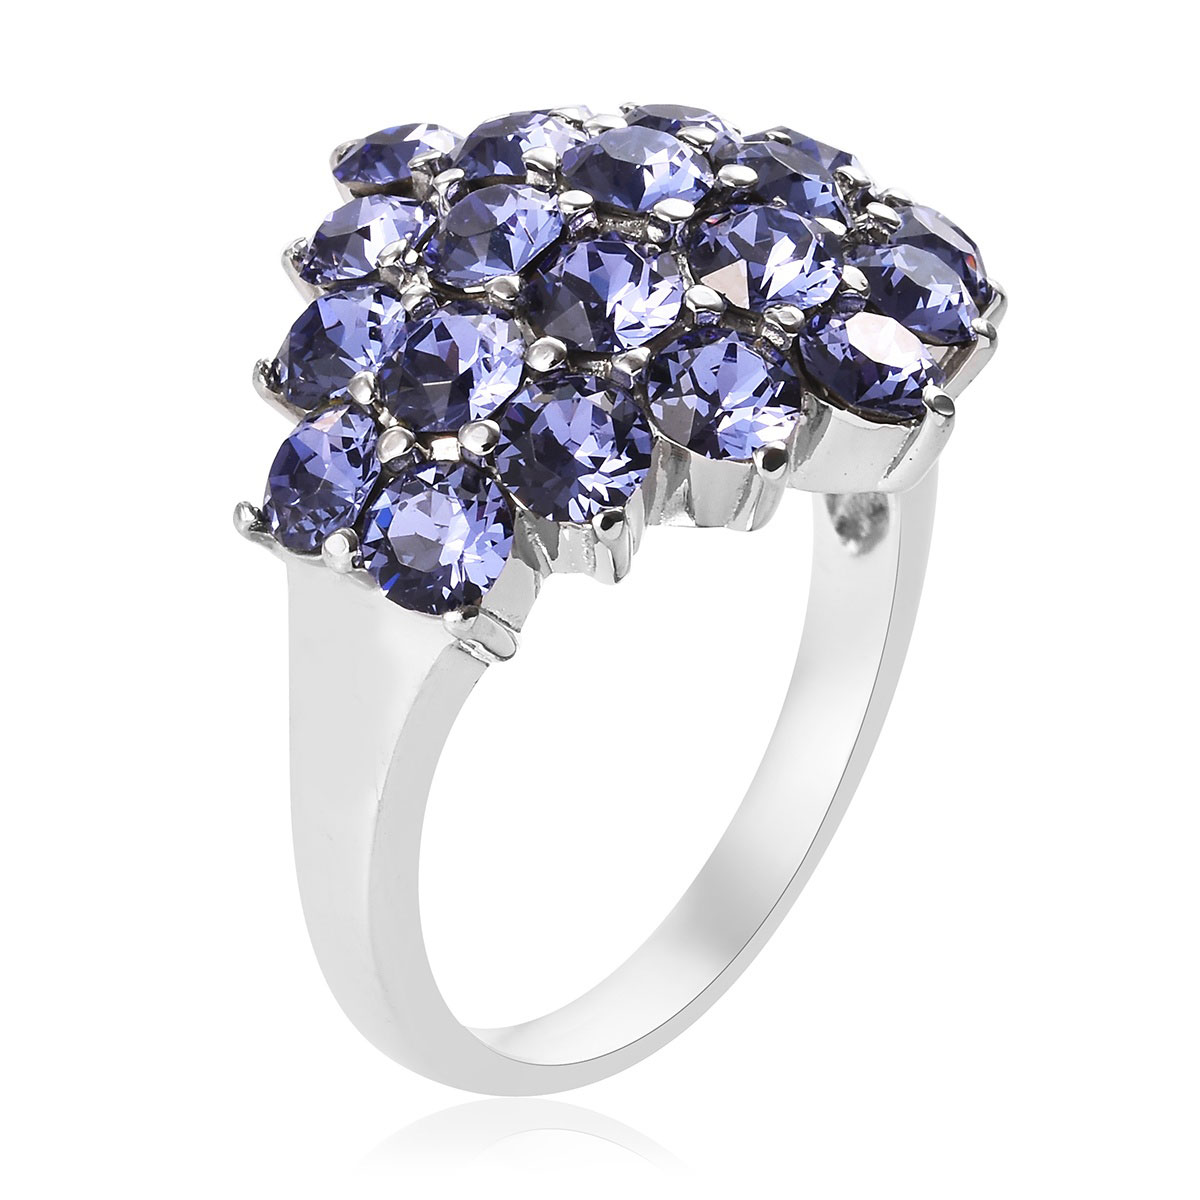 Ring in Stainless Steel (Size 5.0) Made with SWAROVSKI Crystal Tanzanite 4.00 ctw